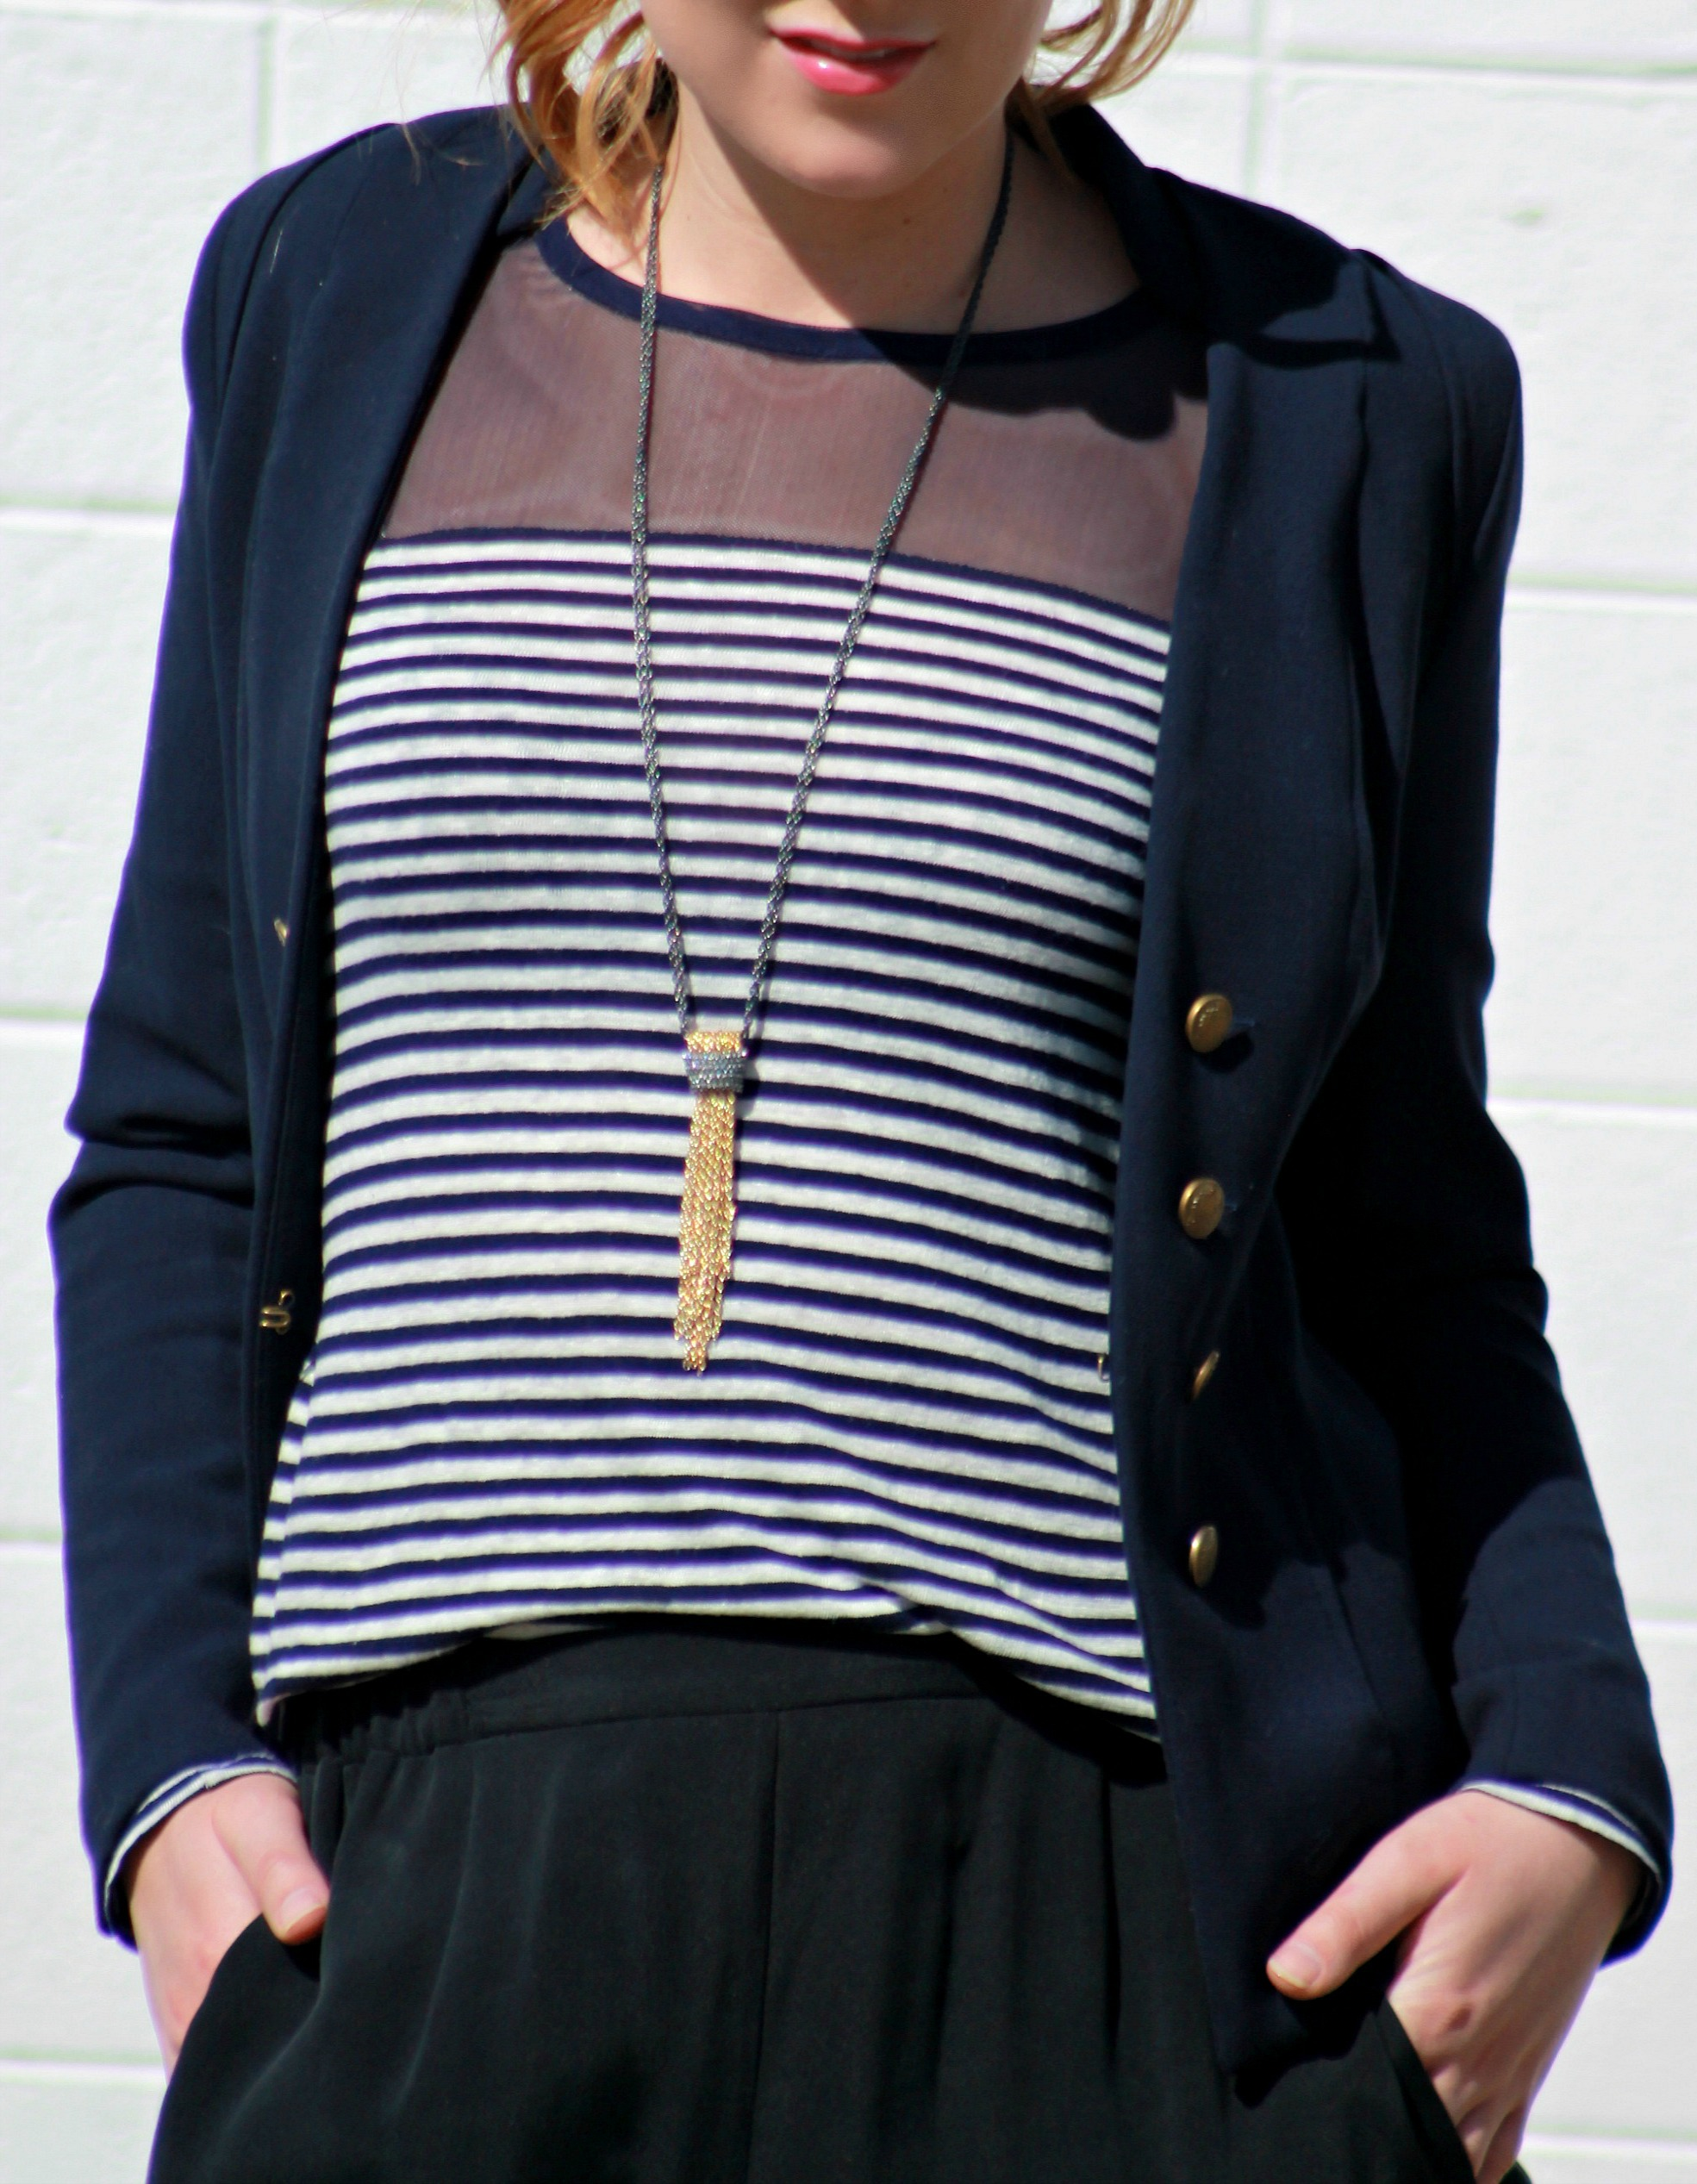 Navy Striped Mesh Shirt + Navy Blazer + Tassel Necklace